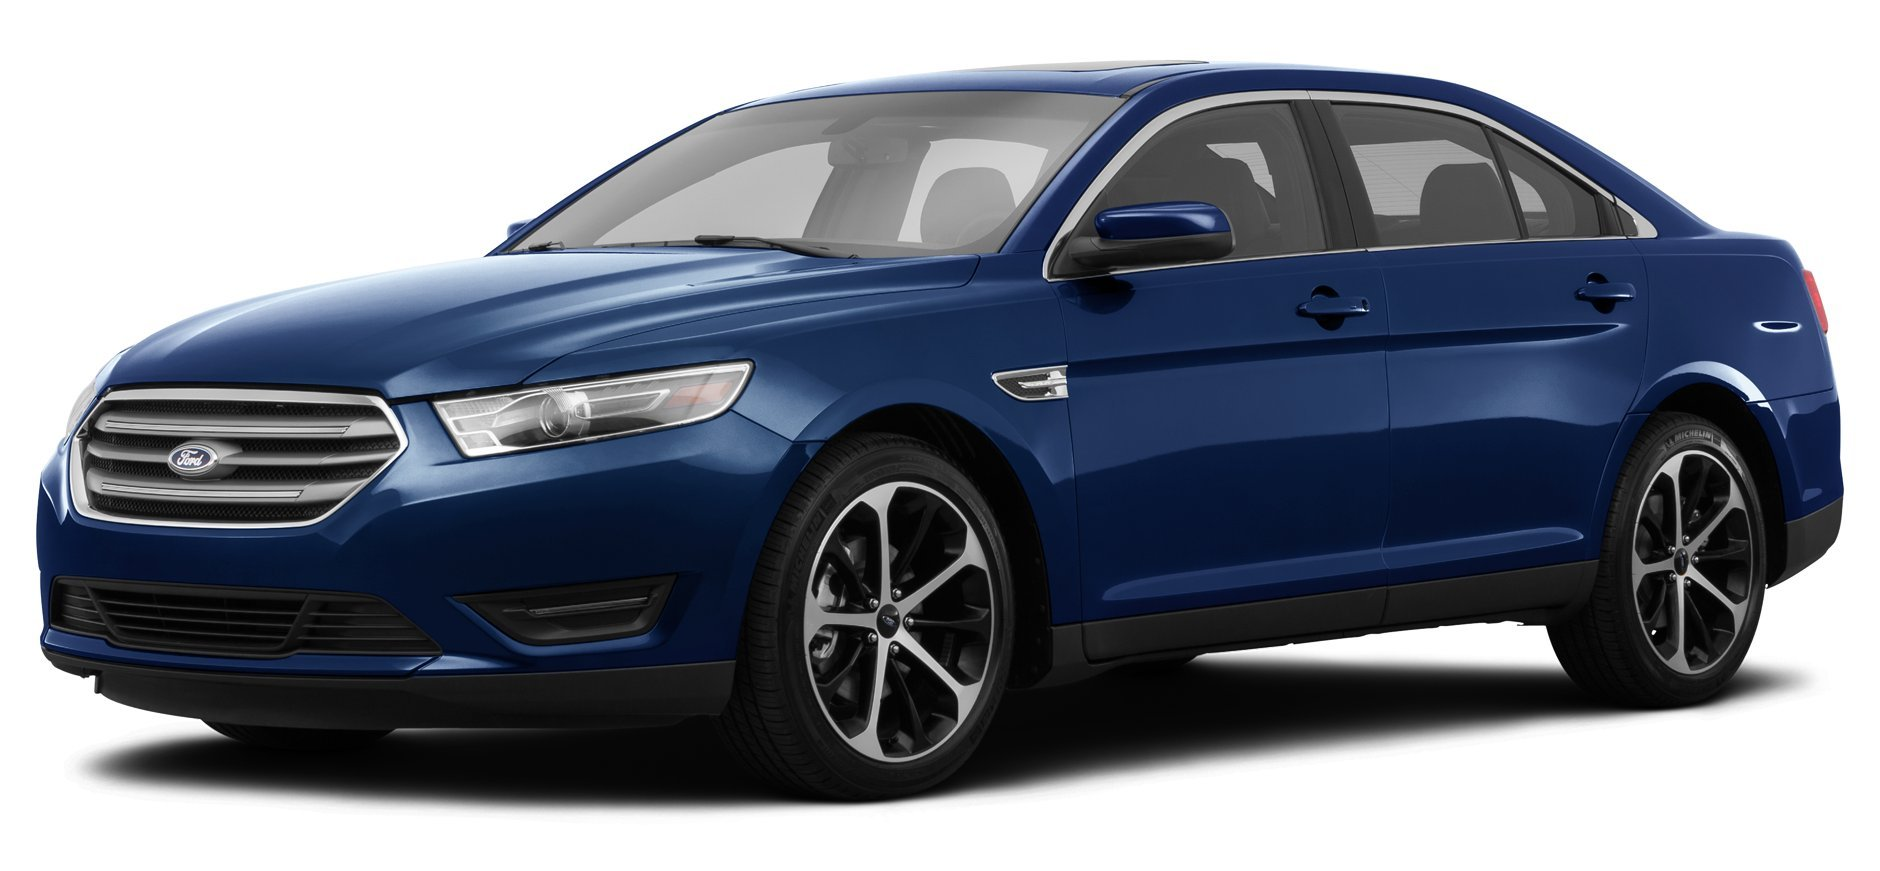 2016 ford taurus reviews images and specs. Black Bedroom Furniture Sets. Home Design Ideas